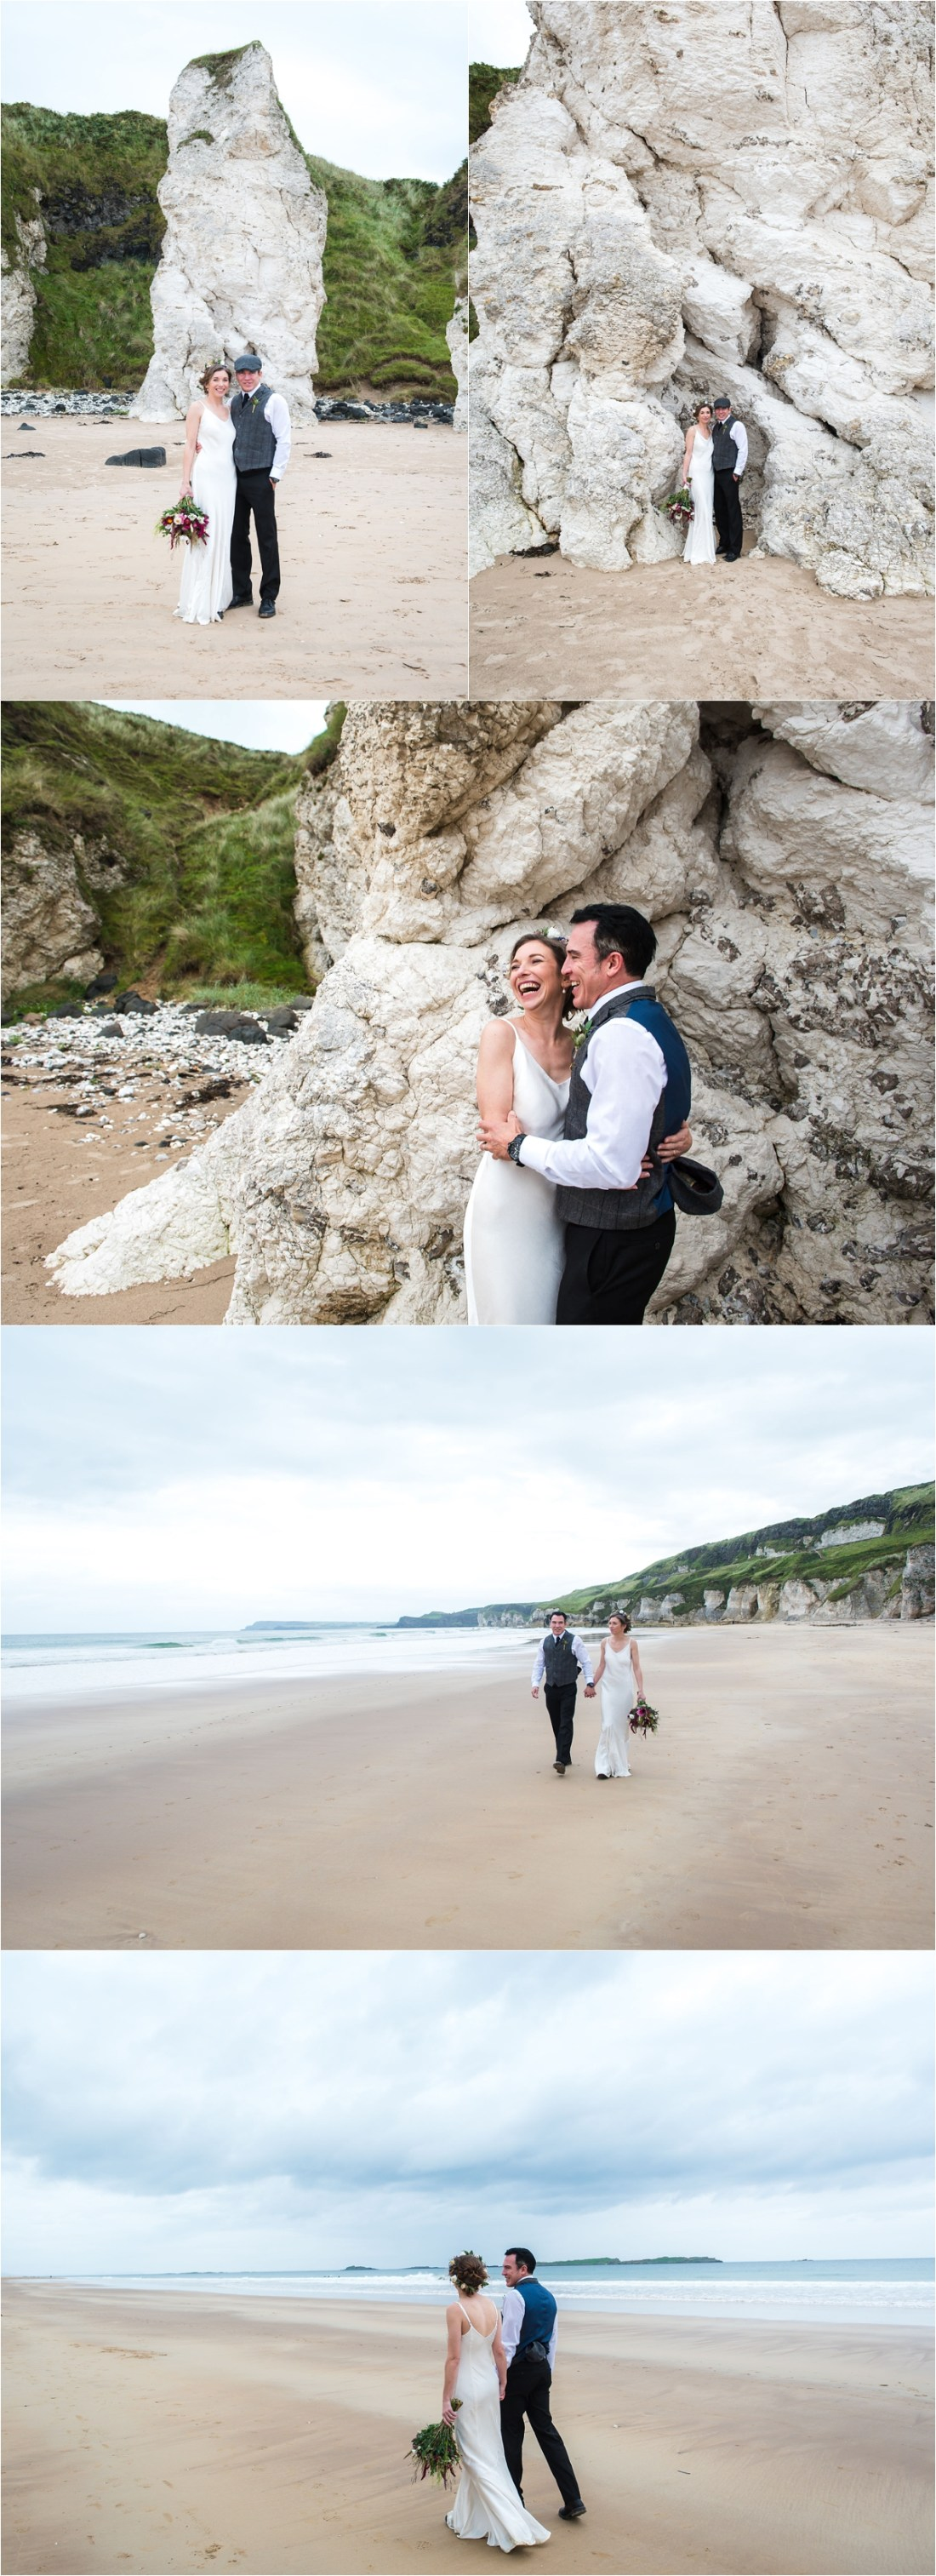 Bride & groom walk along the beach in Northern Ireland by Collette Creative